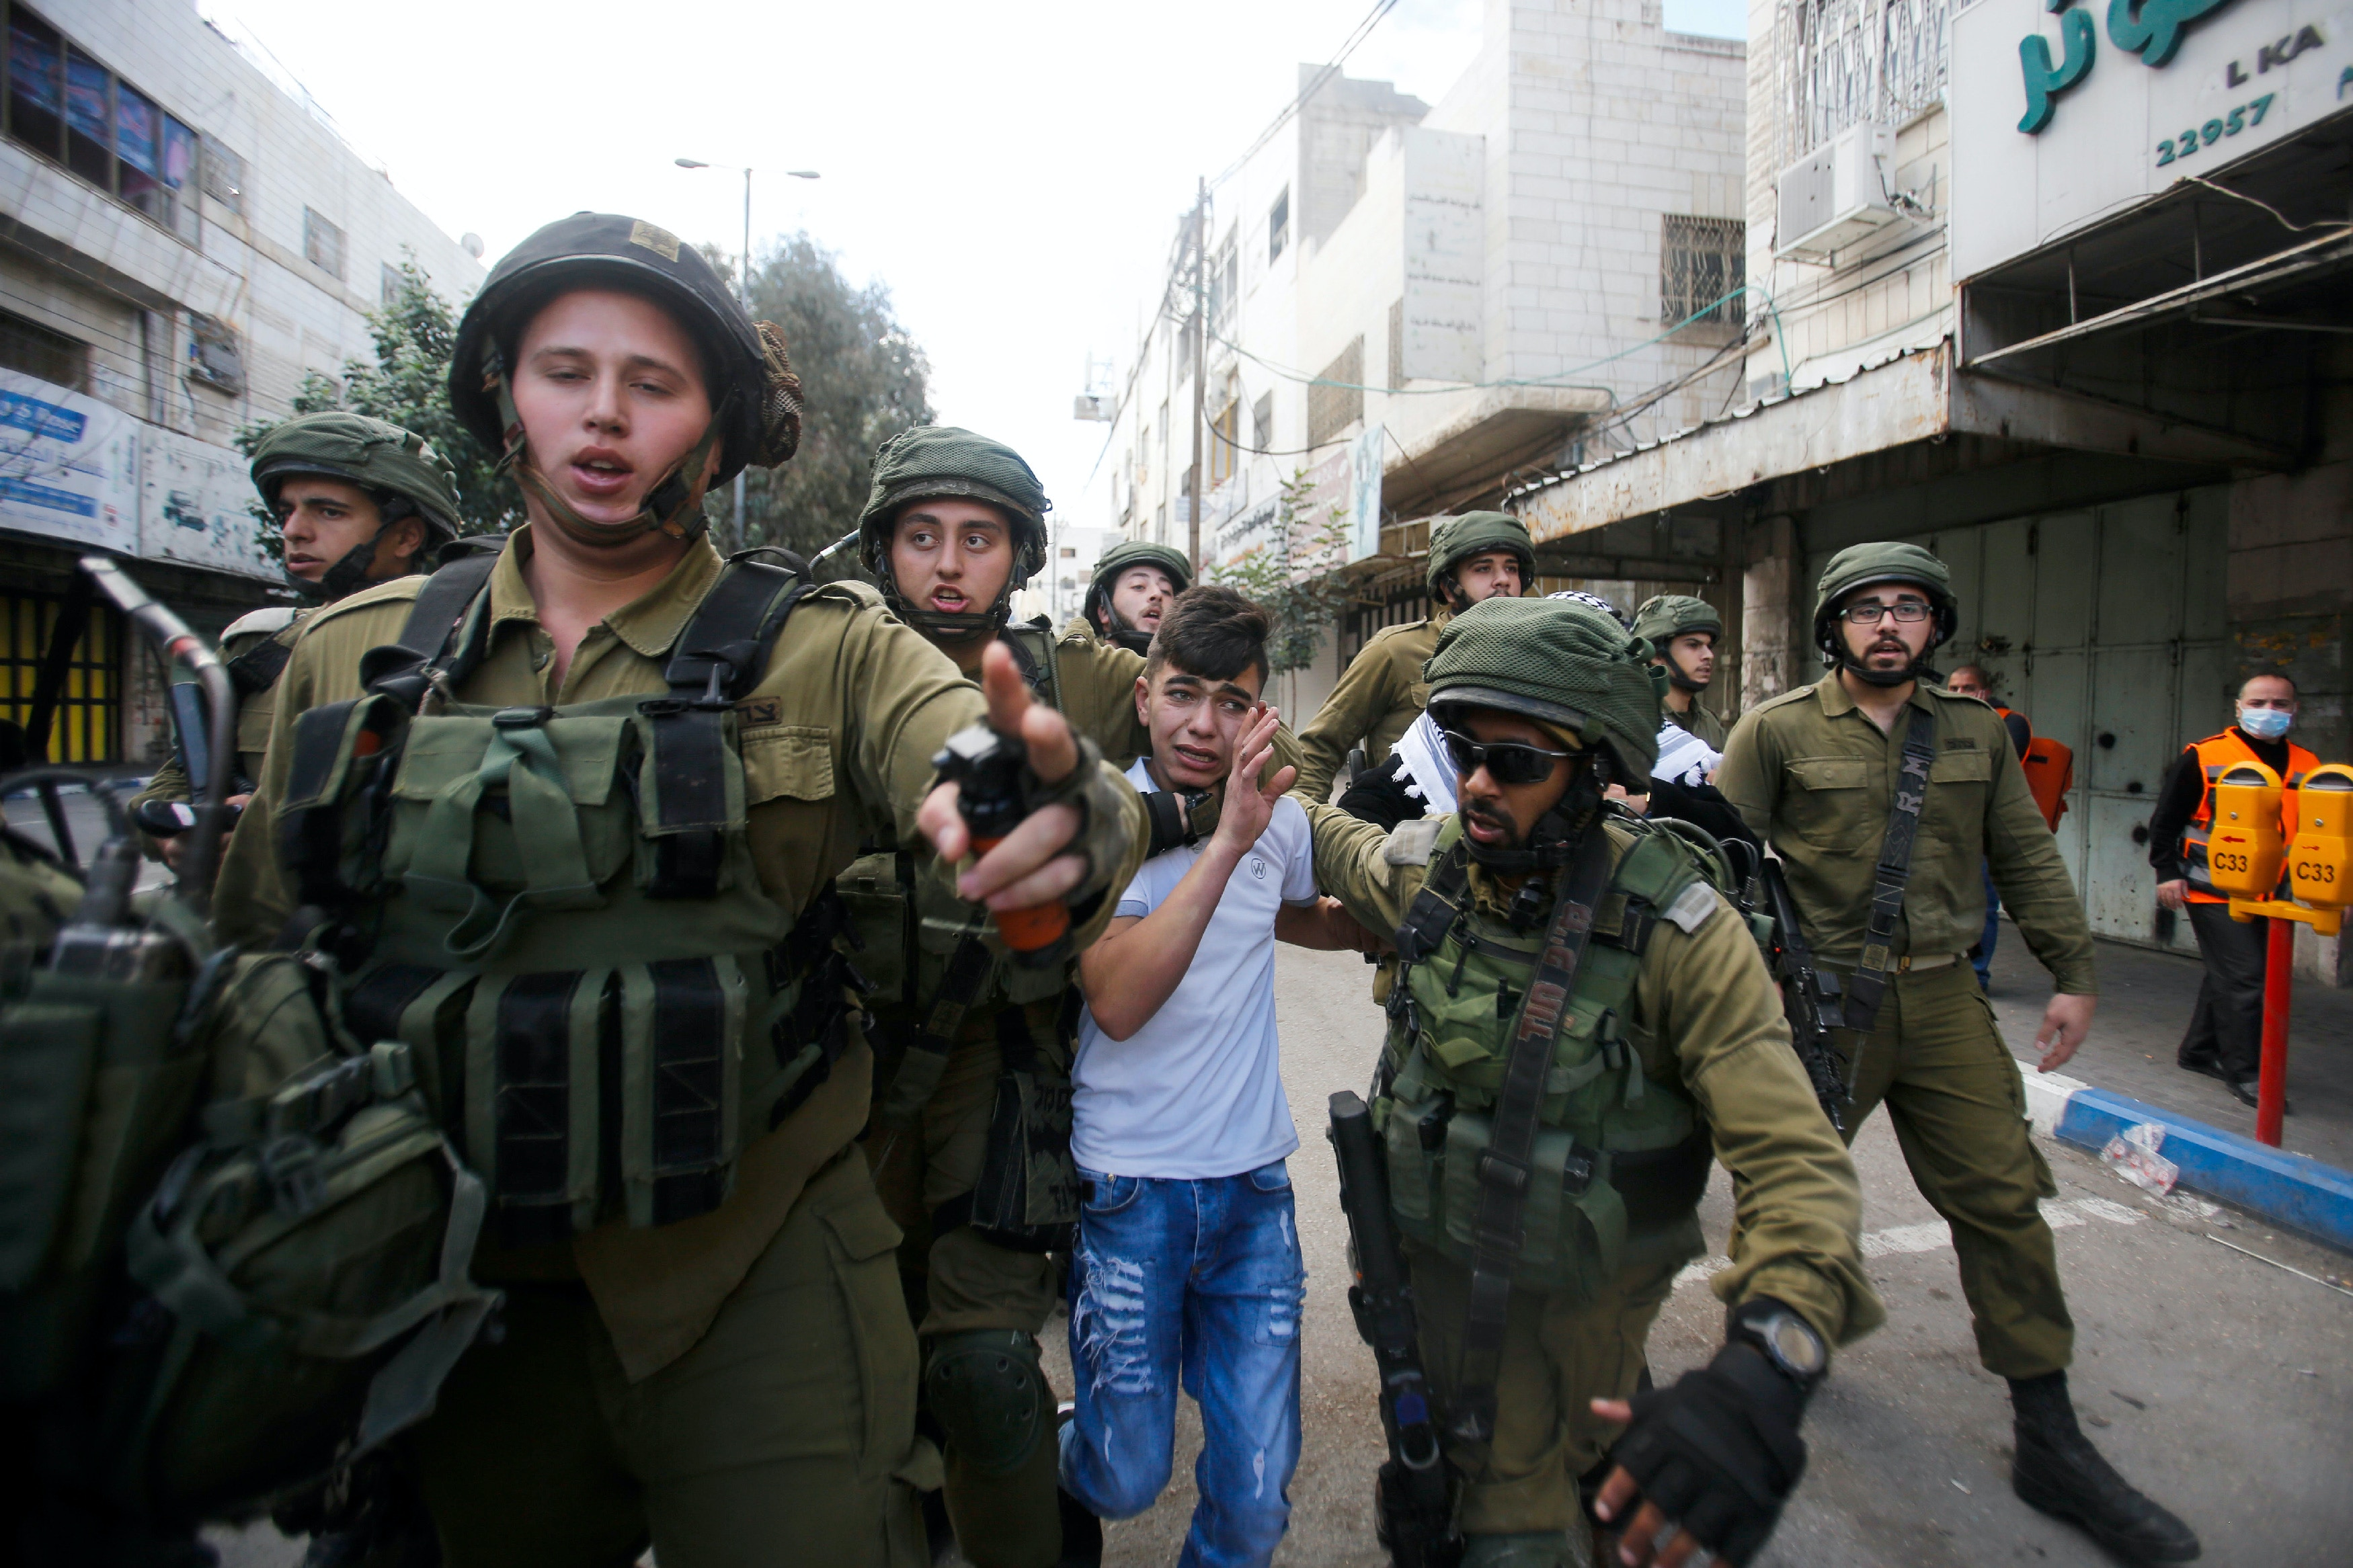 Israeli soldiers detain a Palestinian boy during clashes at a protest against U.S. President Donald Trump's decision to recognize Jerusalem as the capital of Israel in the West Bank city of Hebron, Friday, Dec. 15, 2017. (AP Photo/Nasser Shiyoukhi)